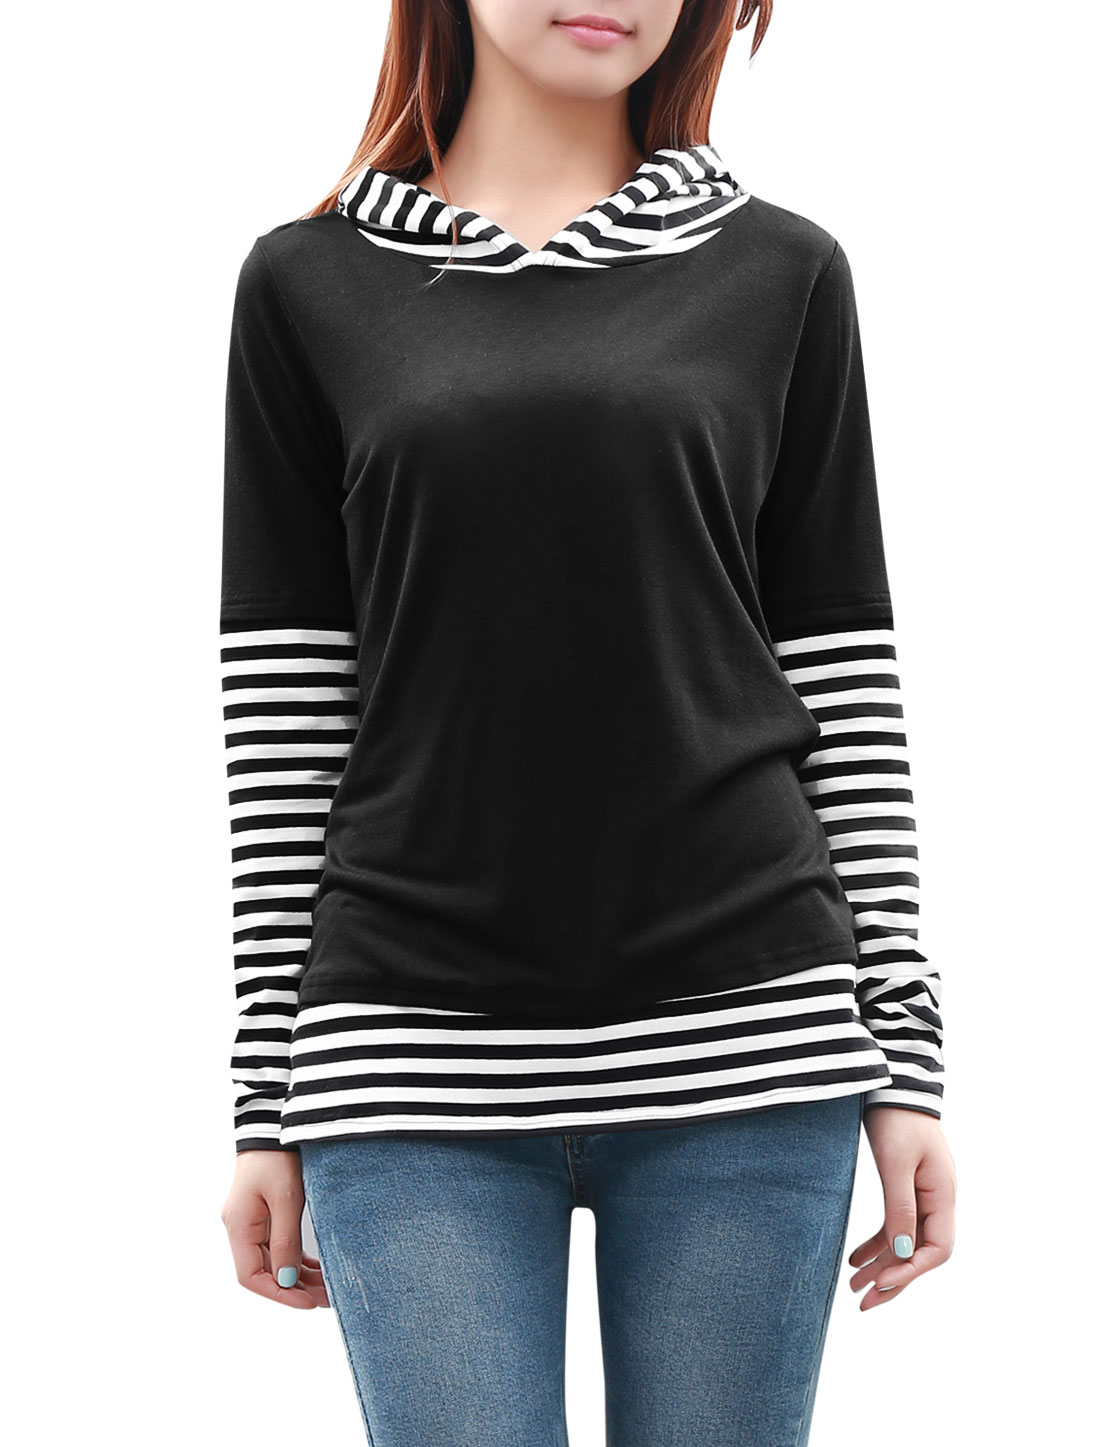 Striped Long Sleeve Autumn Hooded Shirt XS for Women Black White